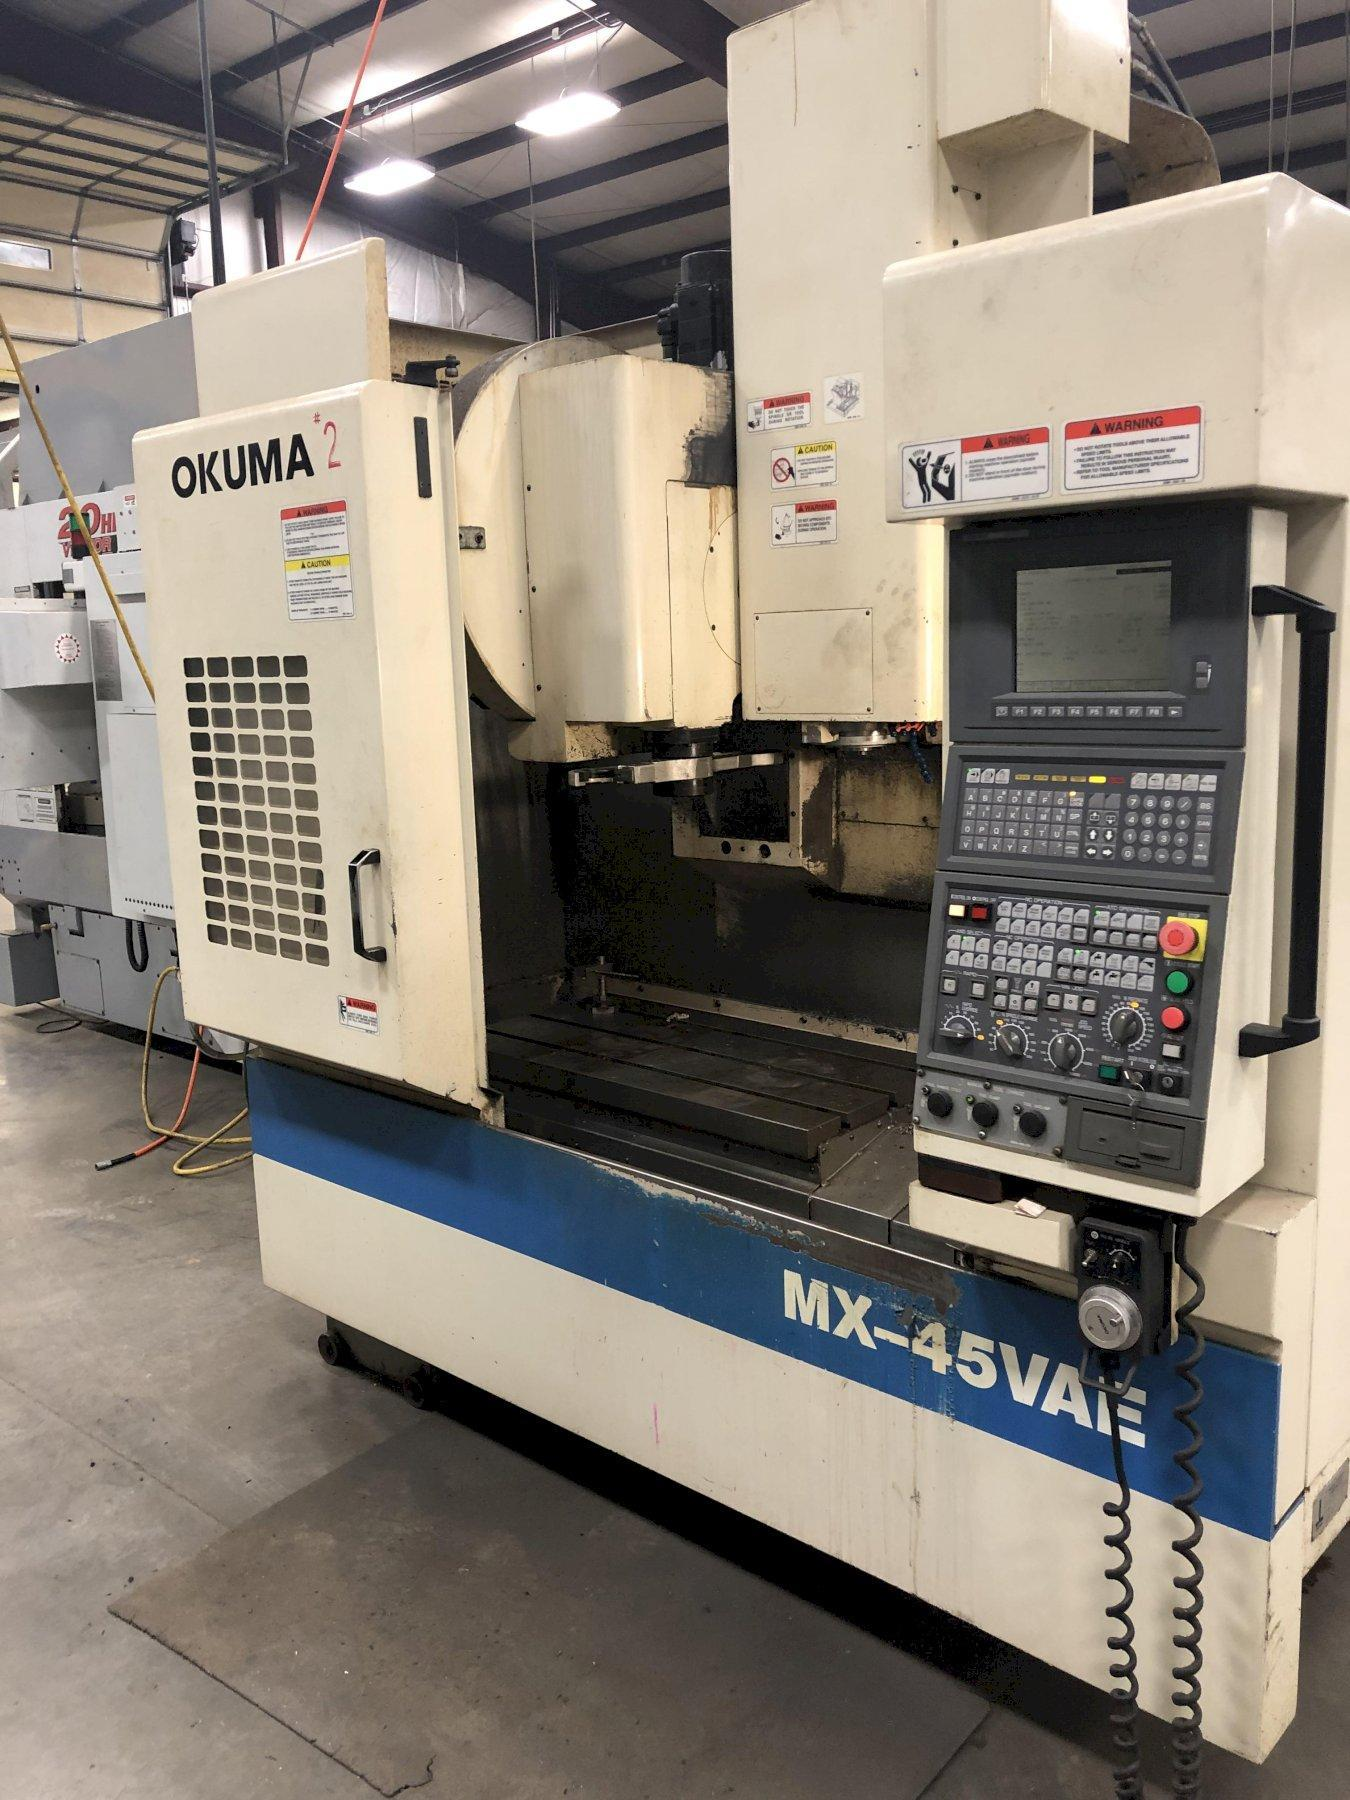 OKUMA MX-45 VAE CNC VERTICAL MACHINING CENTER. STOCK # 1300720